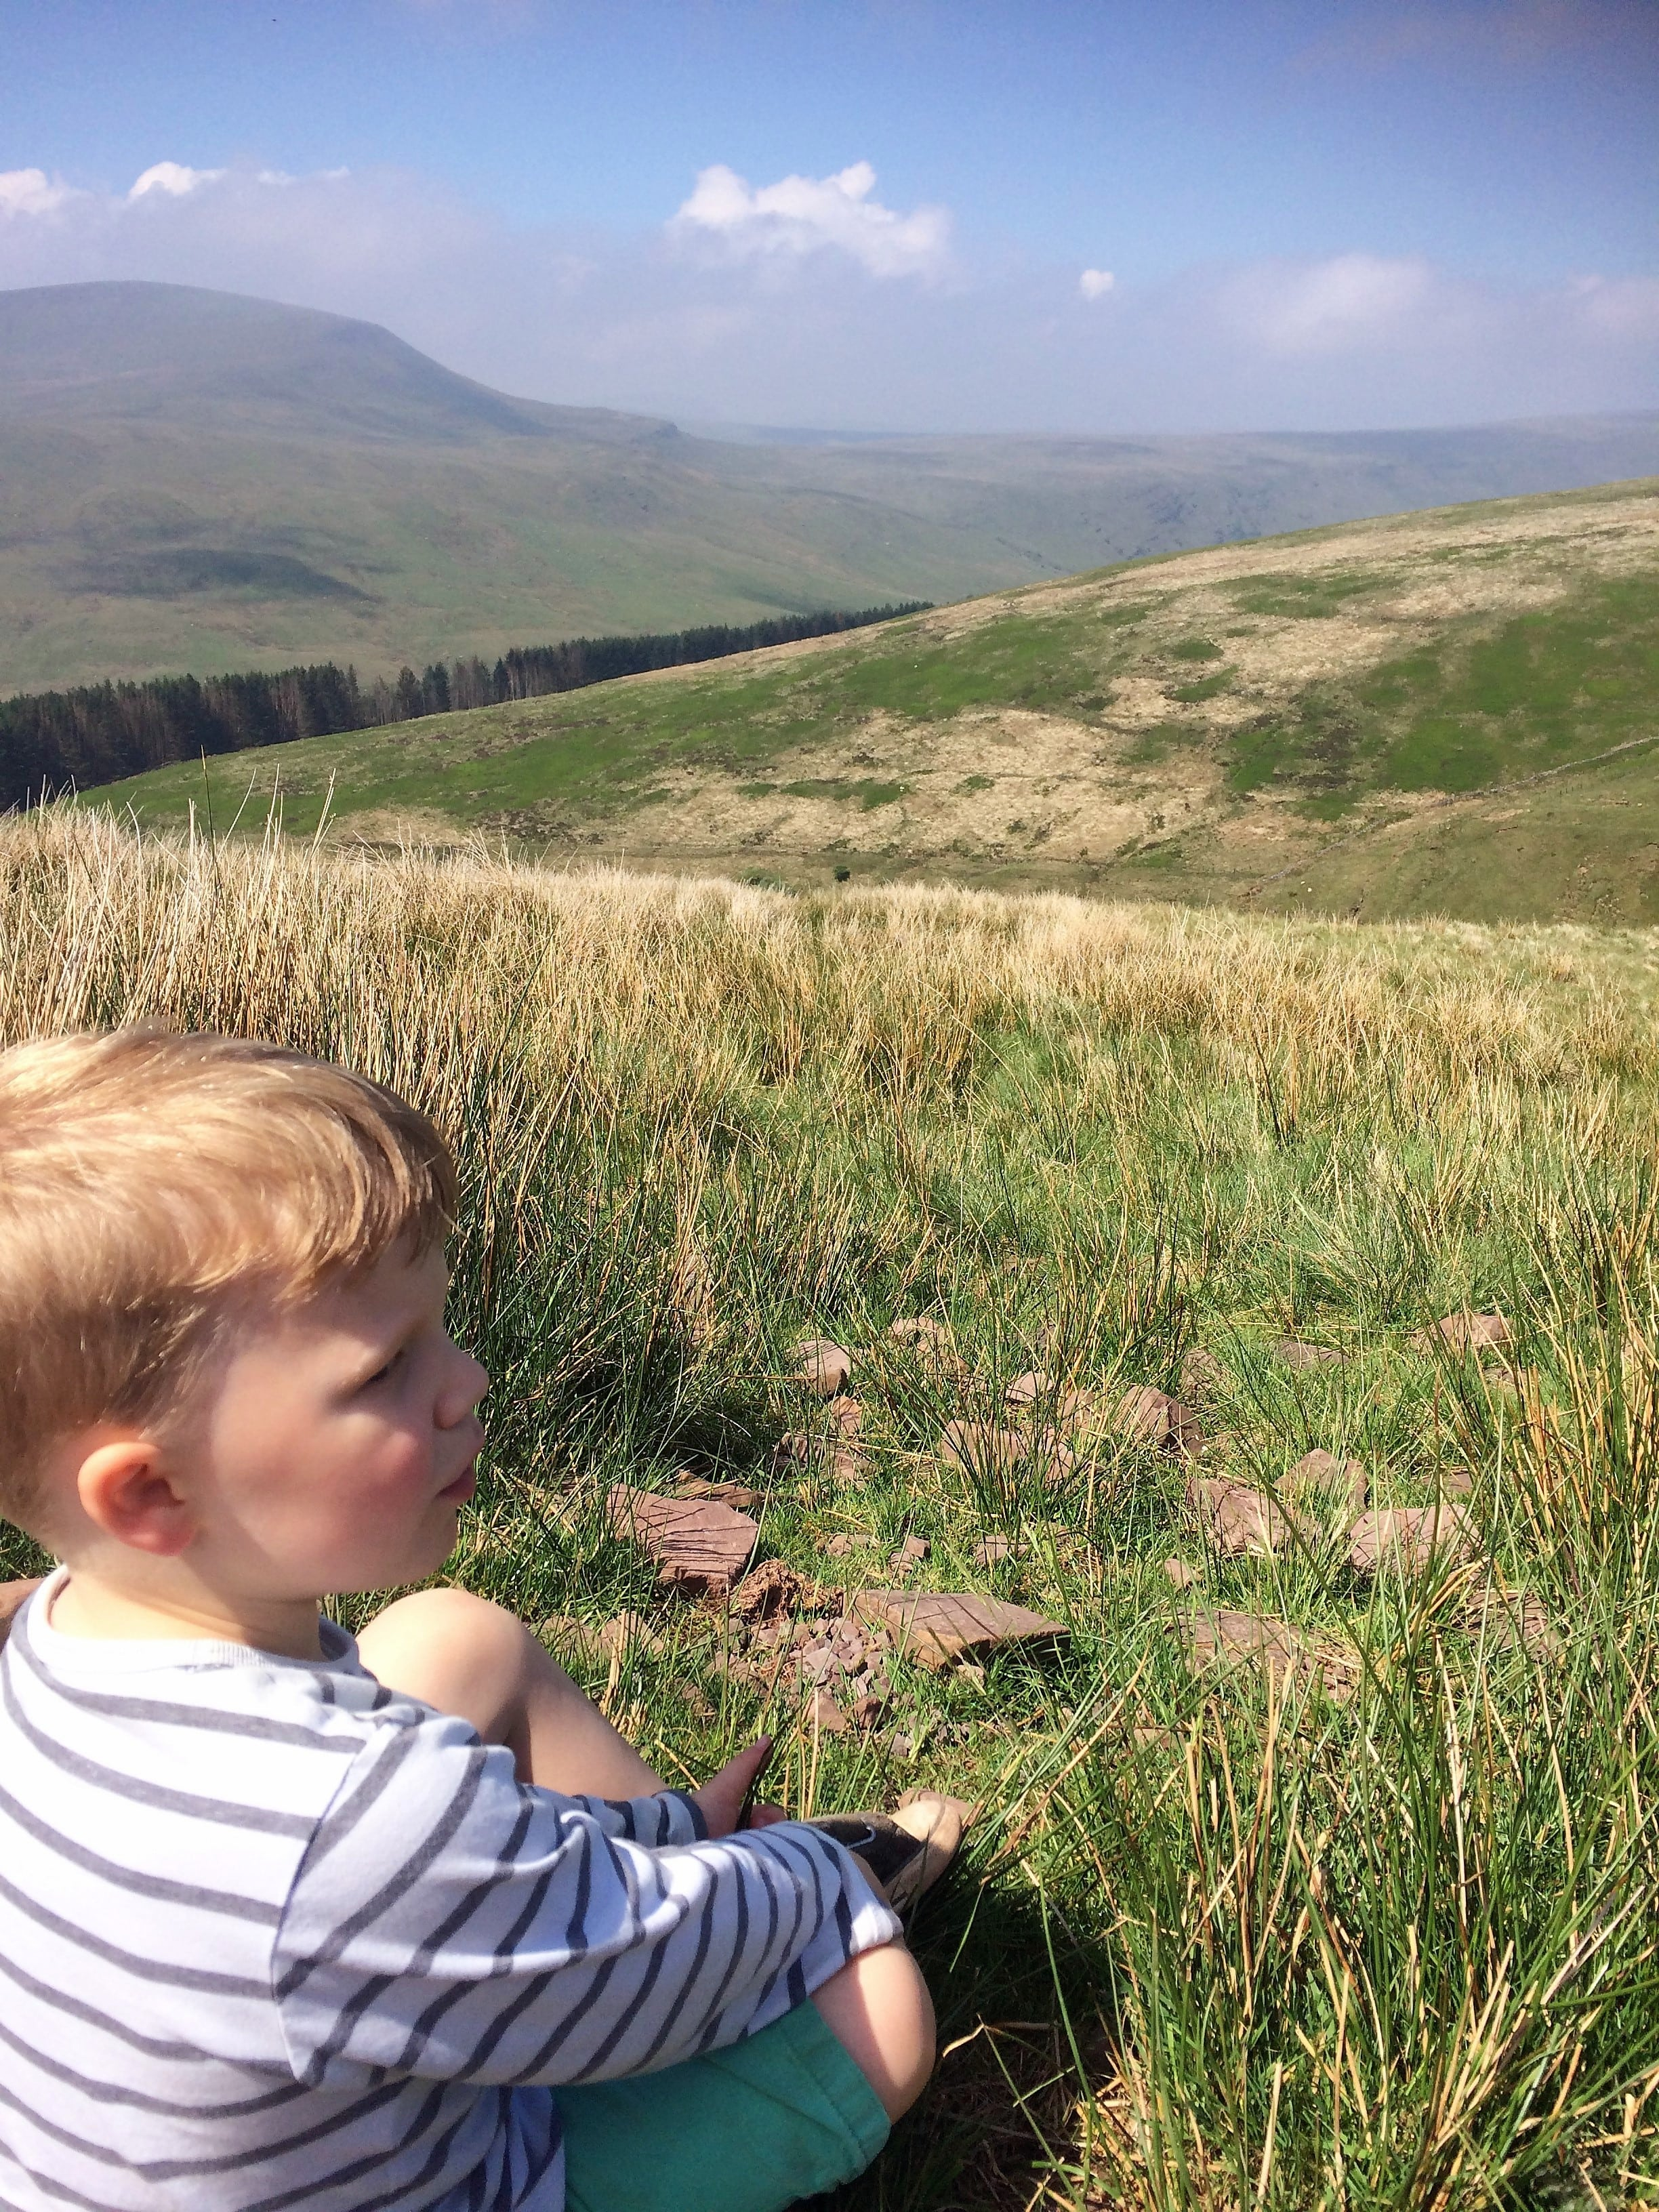 A moment of reflection at Pen y Fan